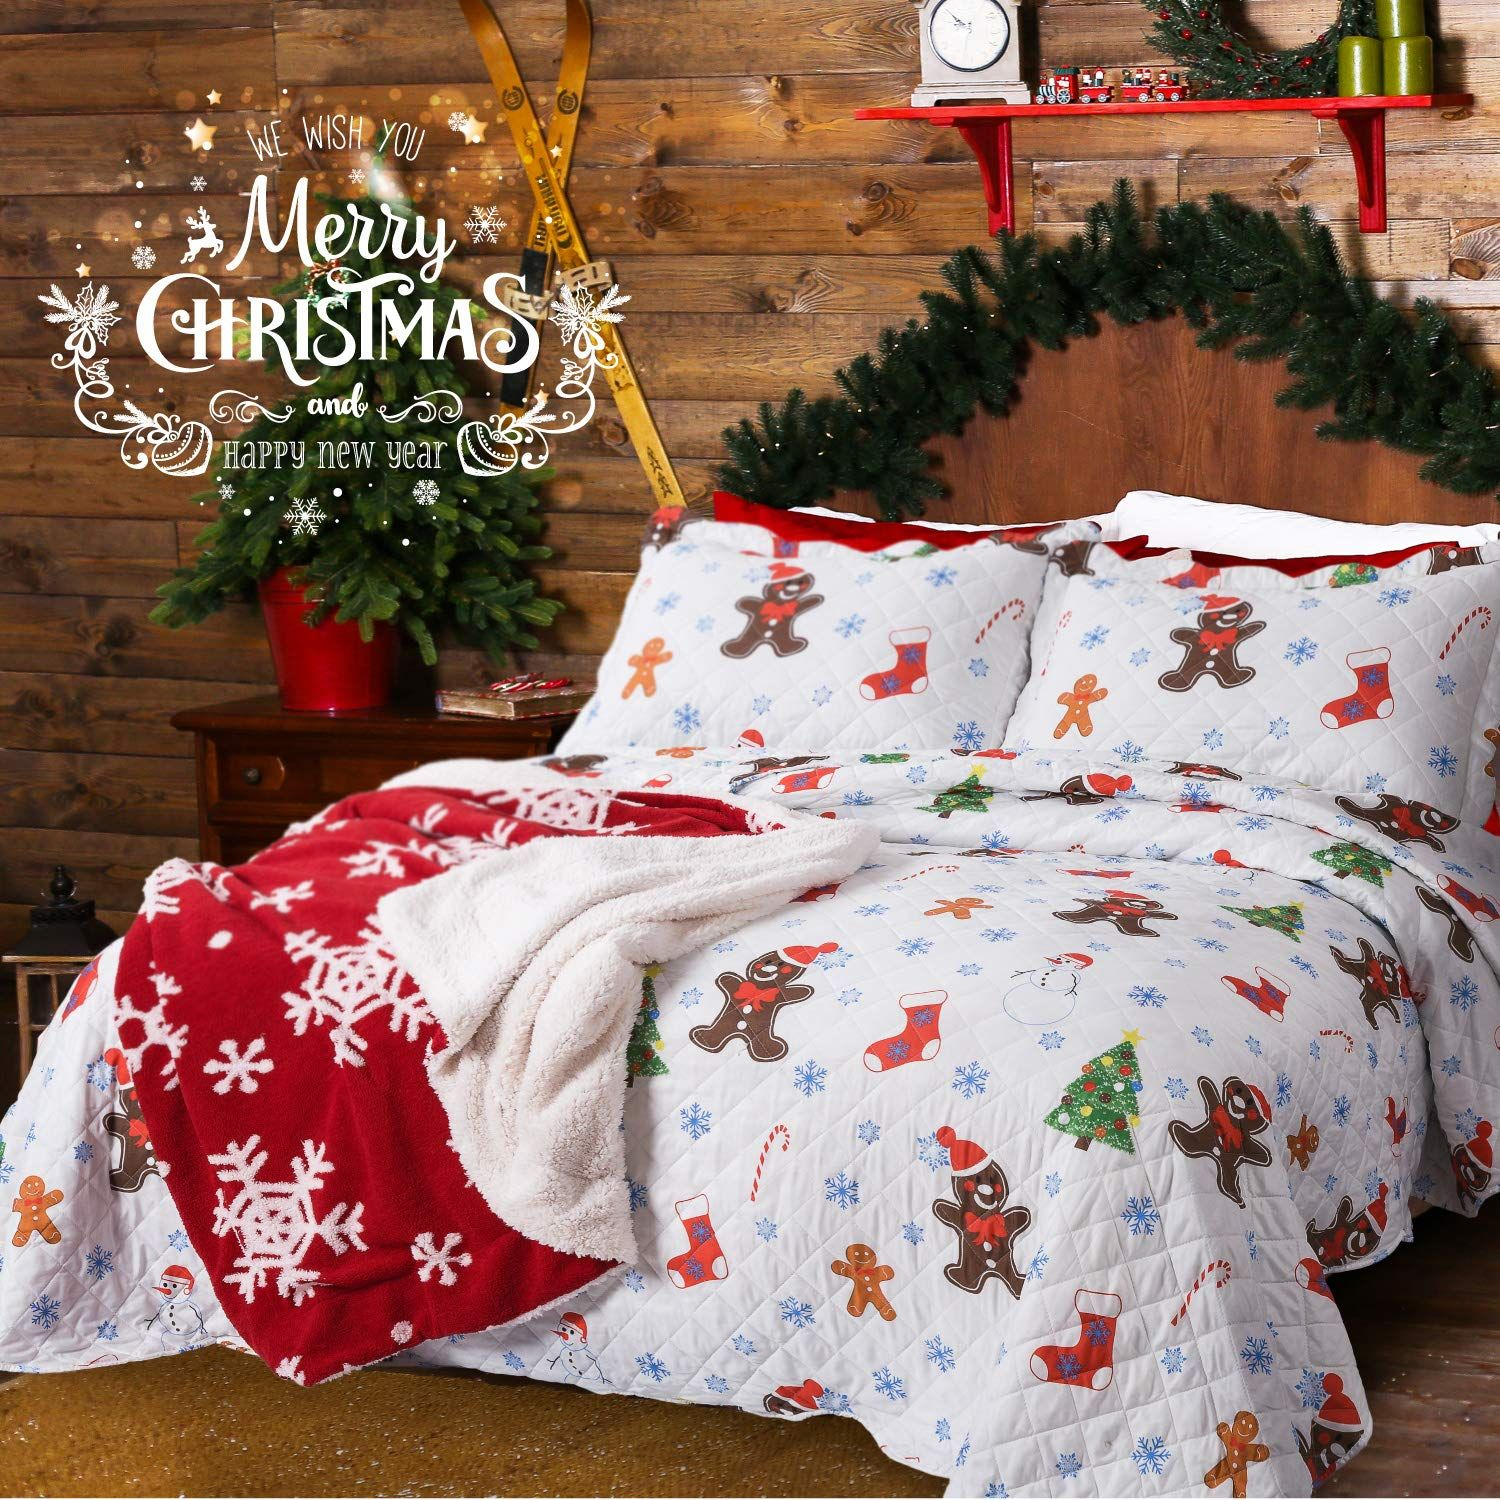 Bedsure printed quilt coverlet set bedspread twin size